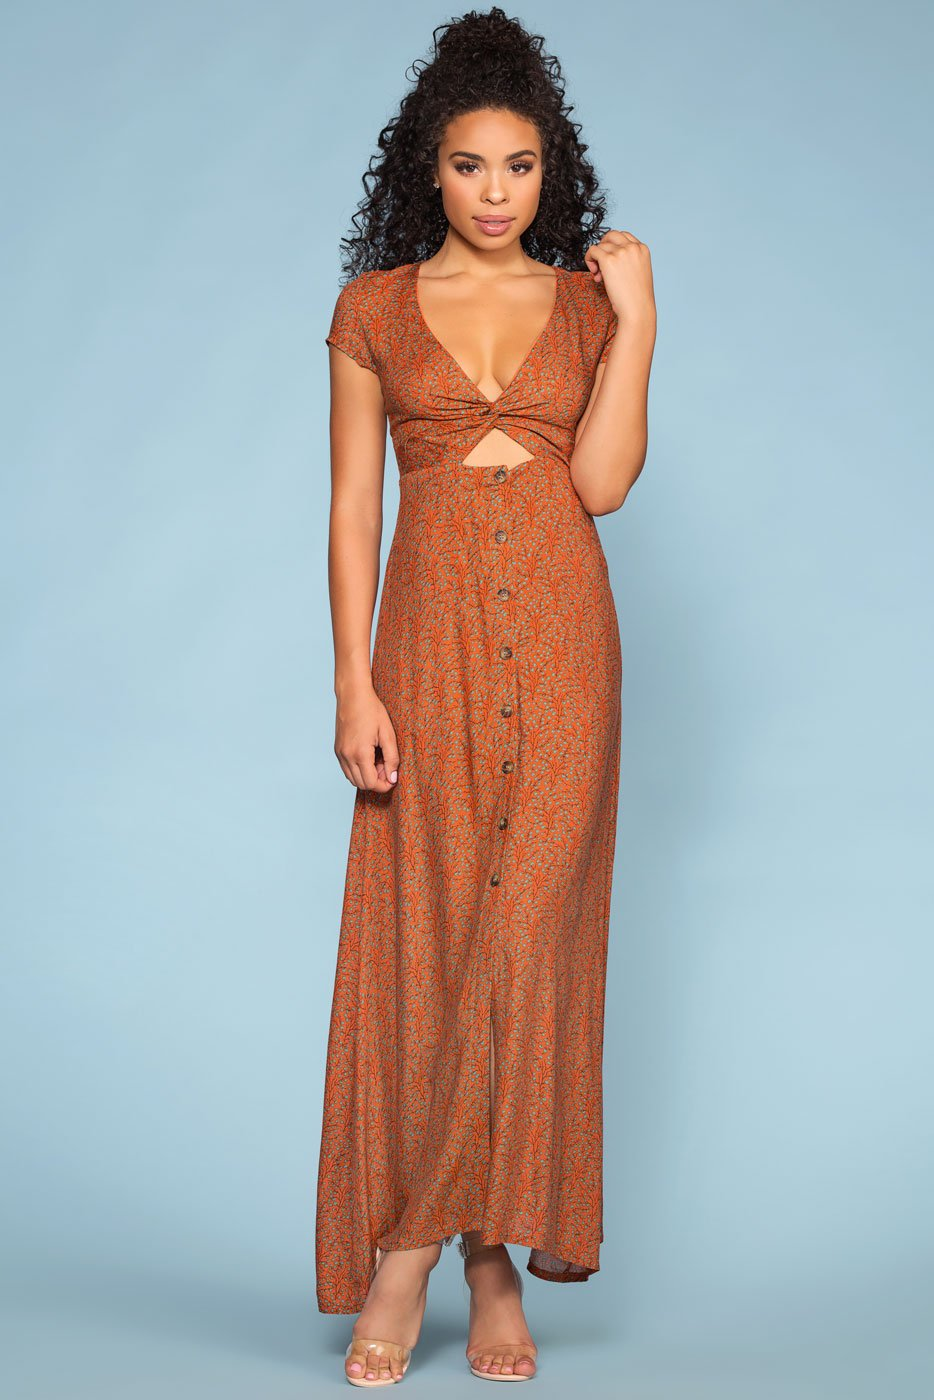 Dresses - Beginnings Peek-a-boo Button Maxi Dress